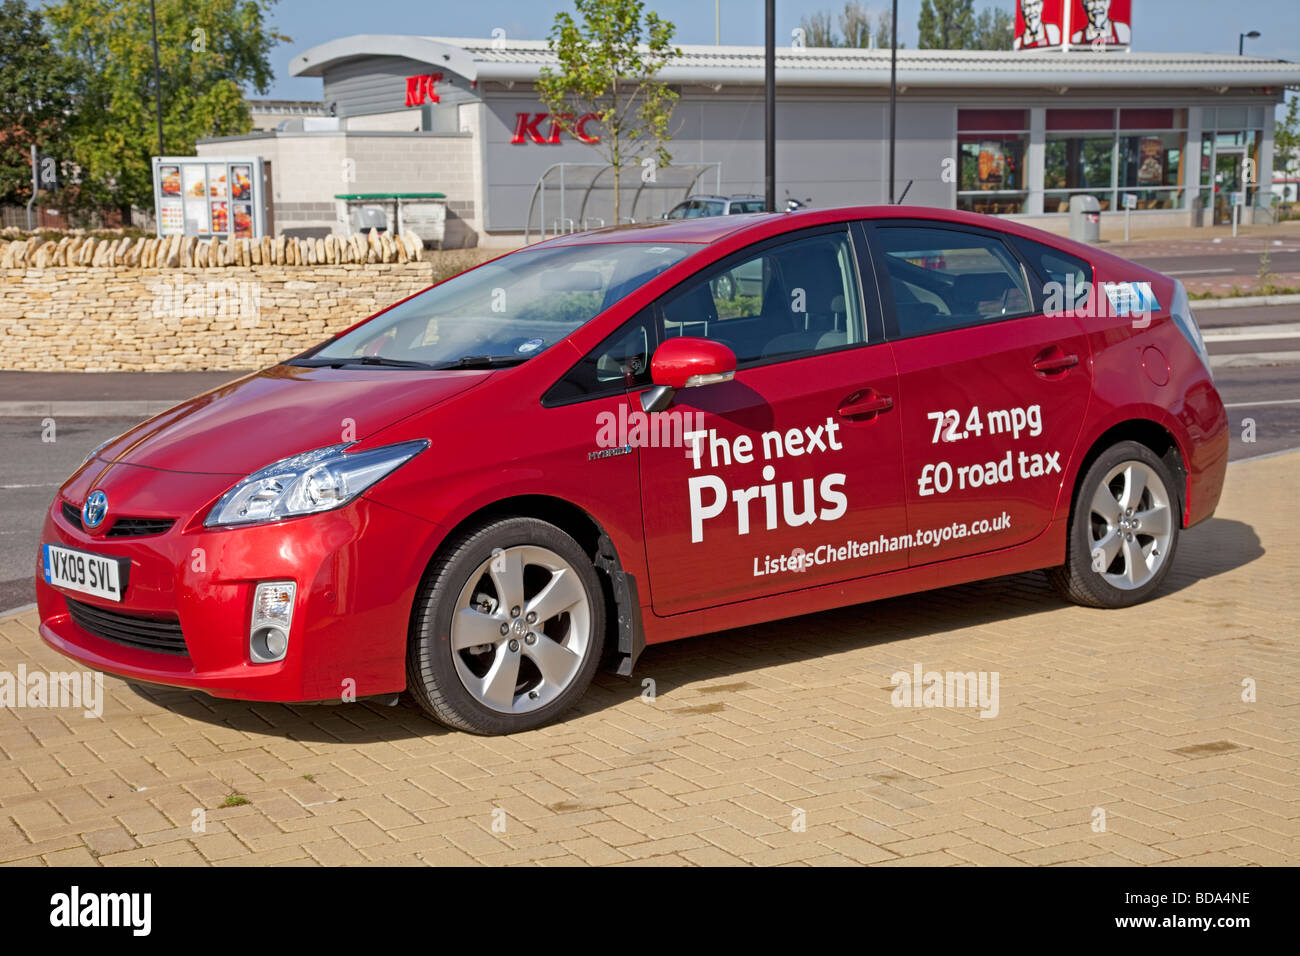 New Prius T3 Hybrid Red Motor Car August 2009 Parked Outside Homebase In  Cheltenham